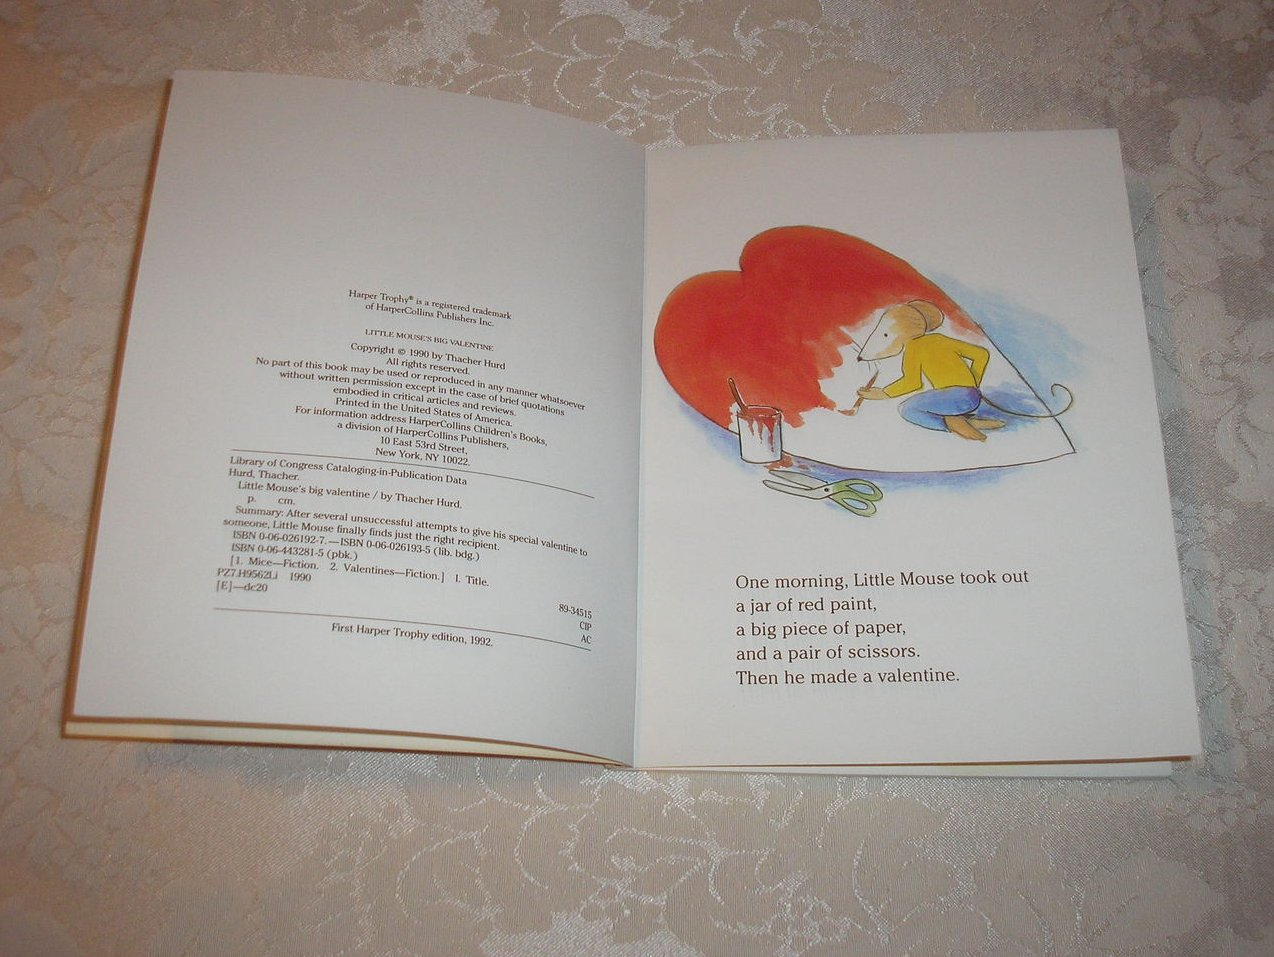 Image 2 of Little Mouse's Big Valentine Thacher Hurd good sc